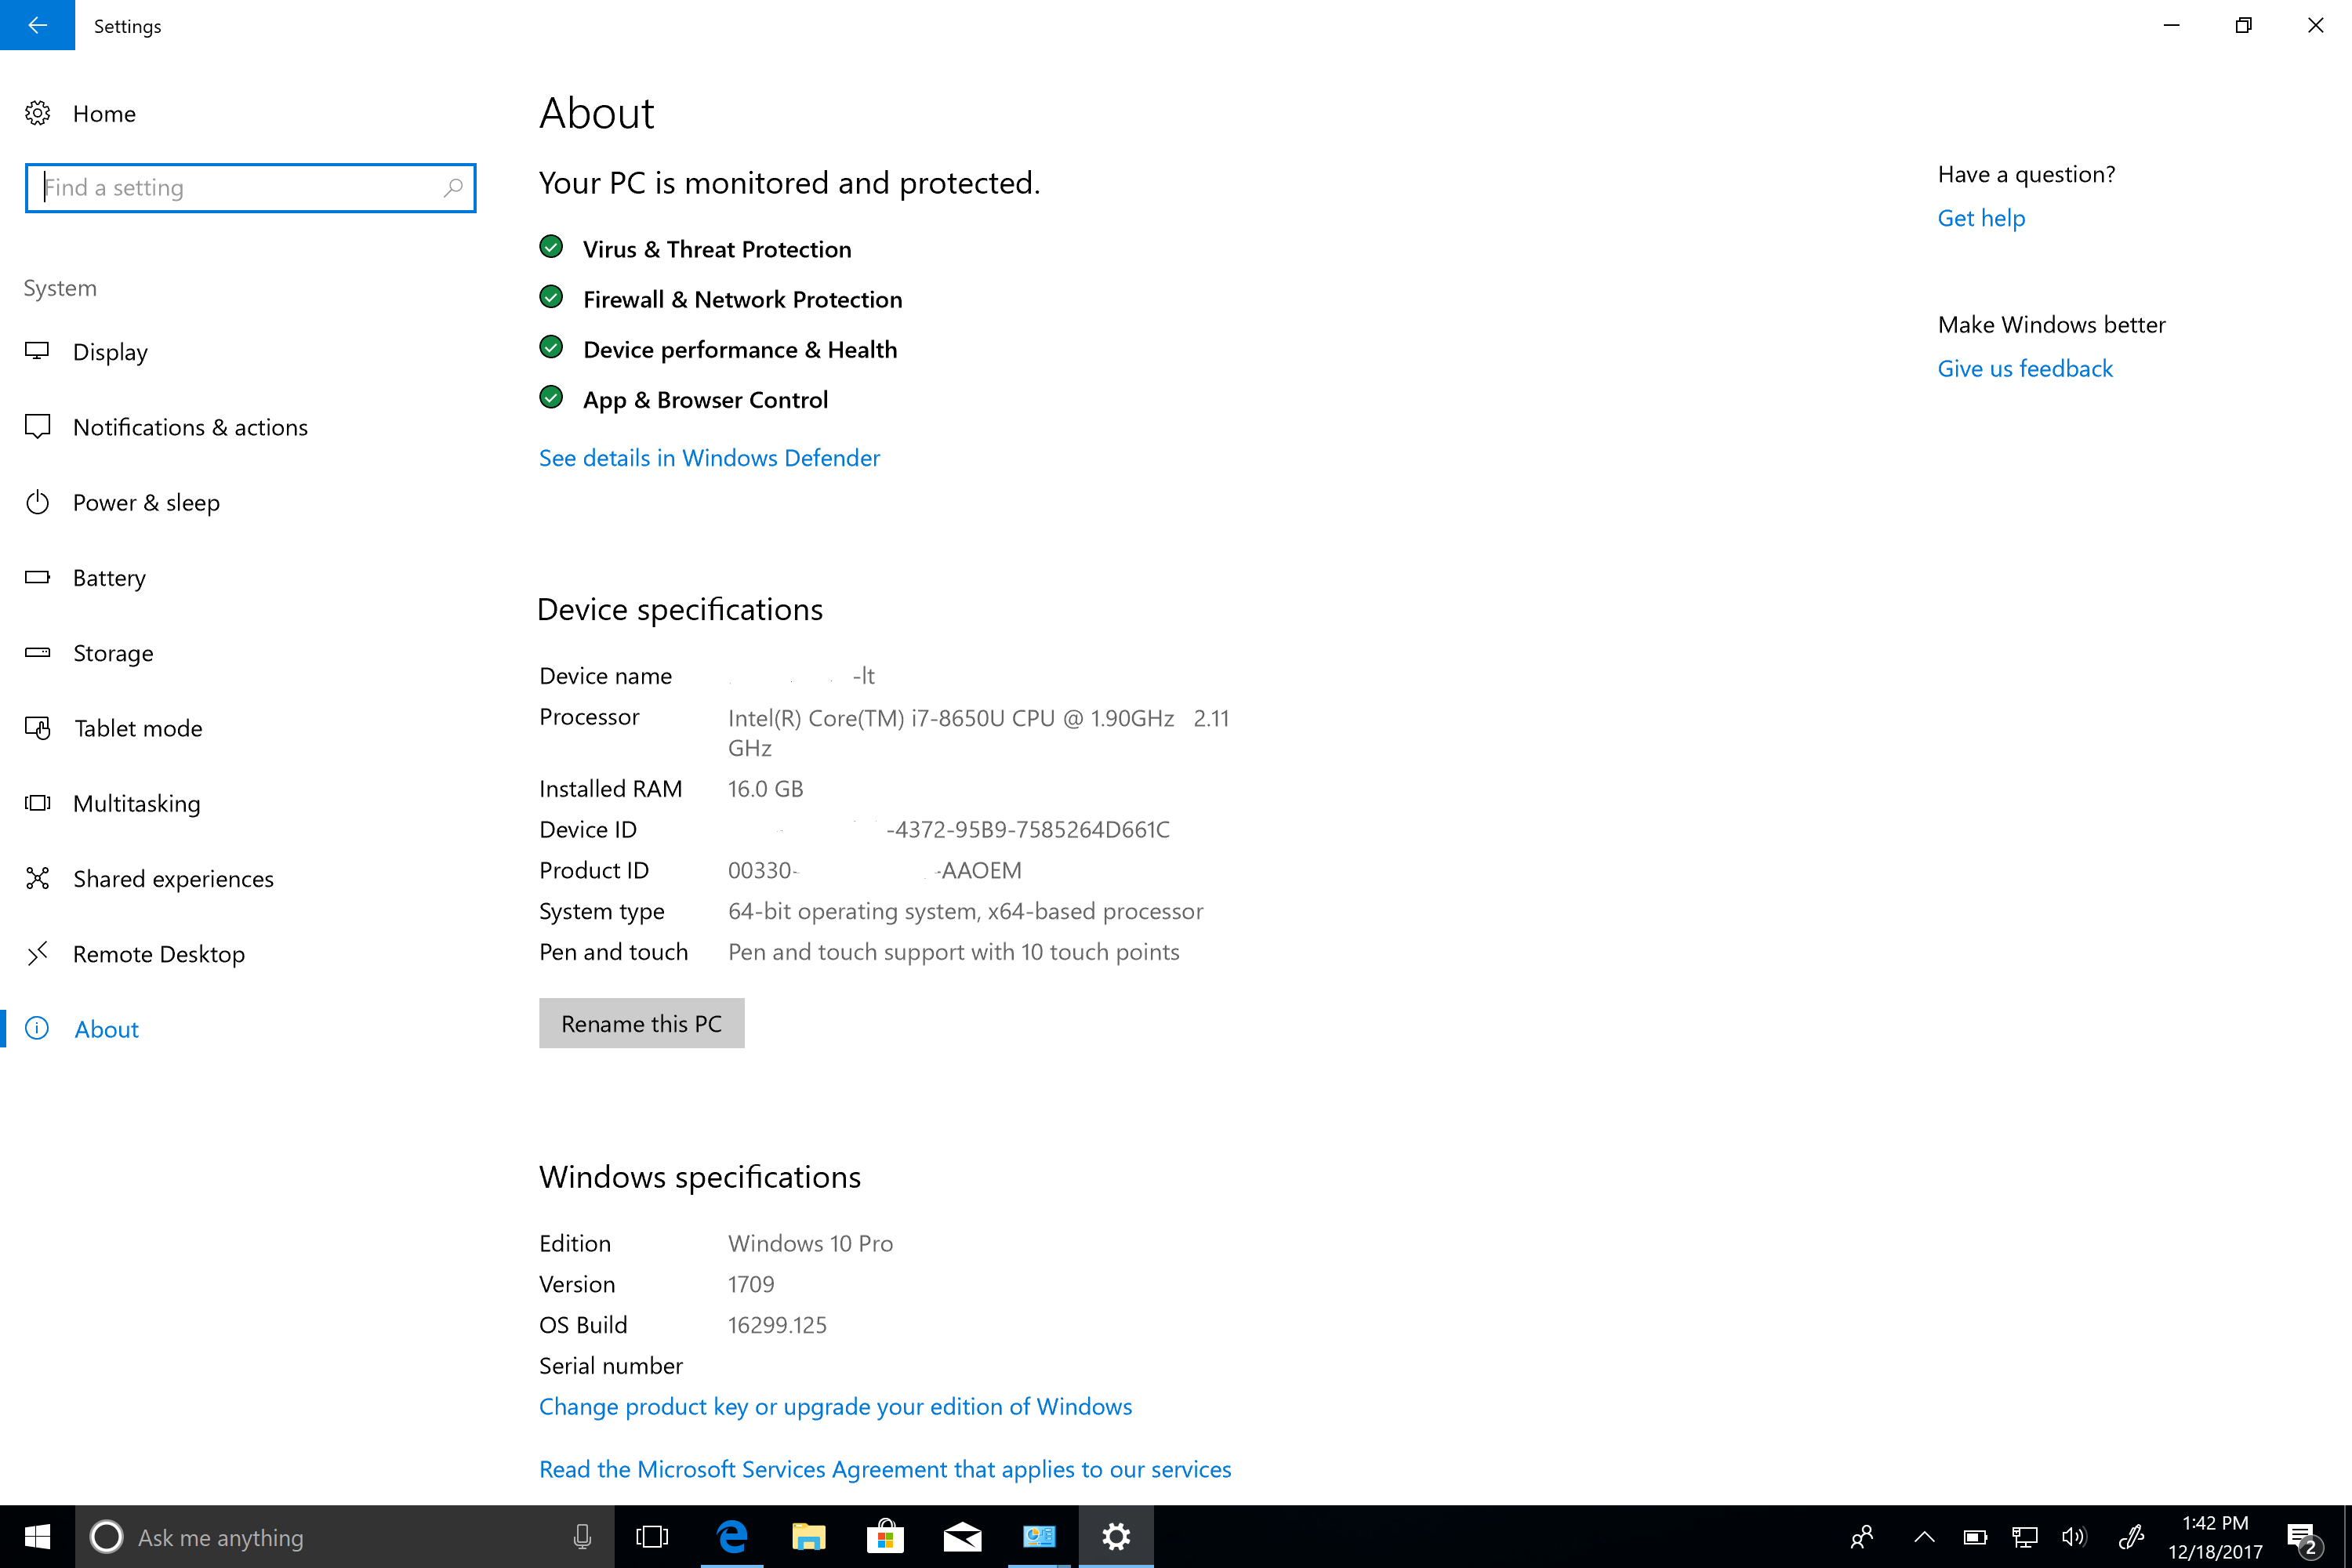 Unable to add Microsoft Surface Book 2 with Win 10 Pro to AD